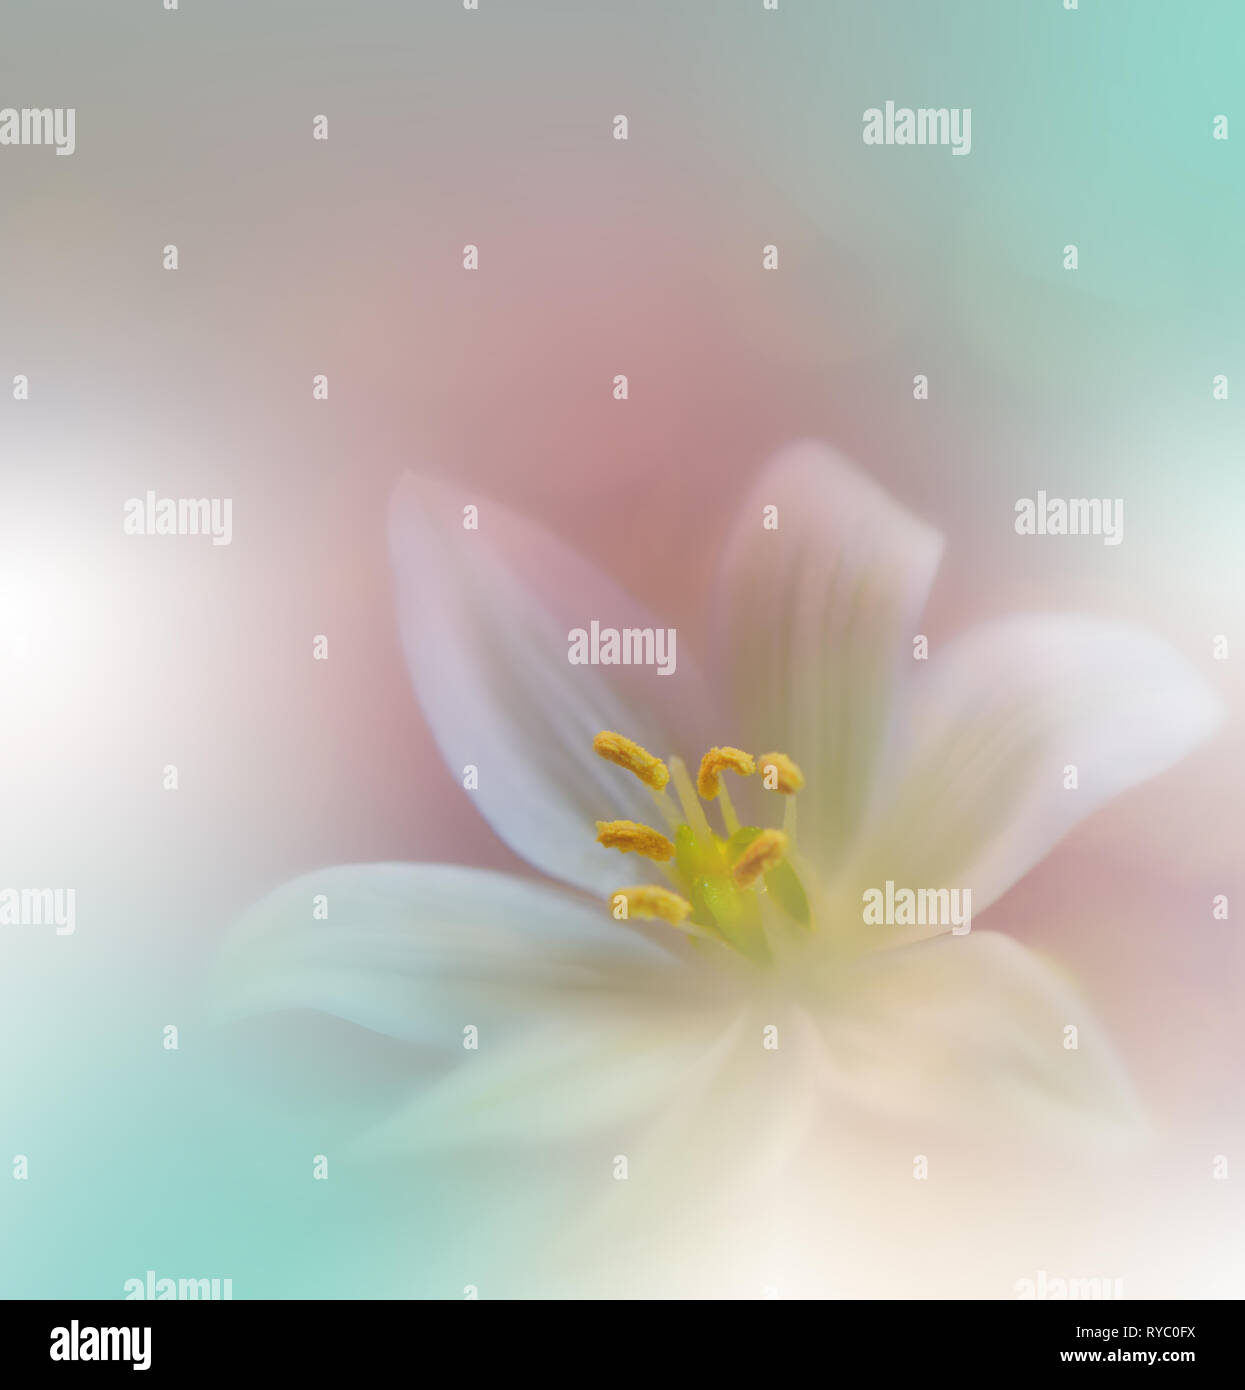 Beautiful Nature Background Colorful Artistic Wallpaper Natural Macro Photography Beauty In Nature Creative Floral Art Tranquil Scene Abstract Flowers Stock Photo Alamy